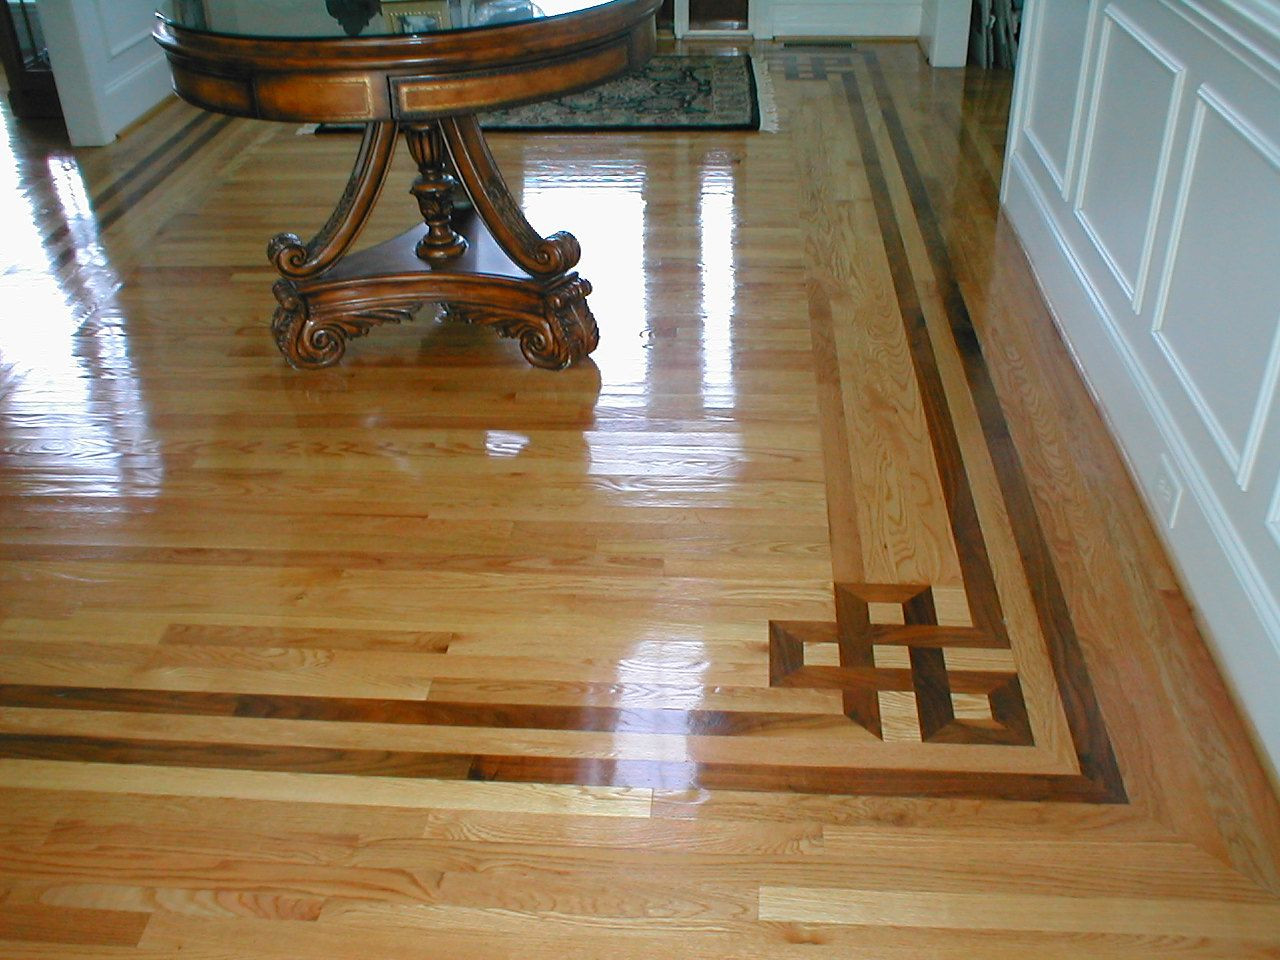 hardwood flooring york pa of i love the illusion of depth created by this border you can tell in i love the illusion of depth created by this border you can tell the installers took care to contrast shades of the border material to keep it from all